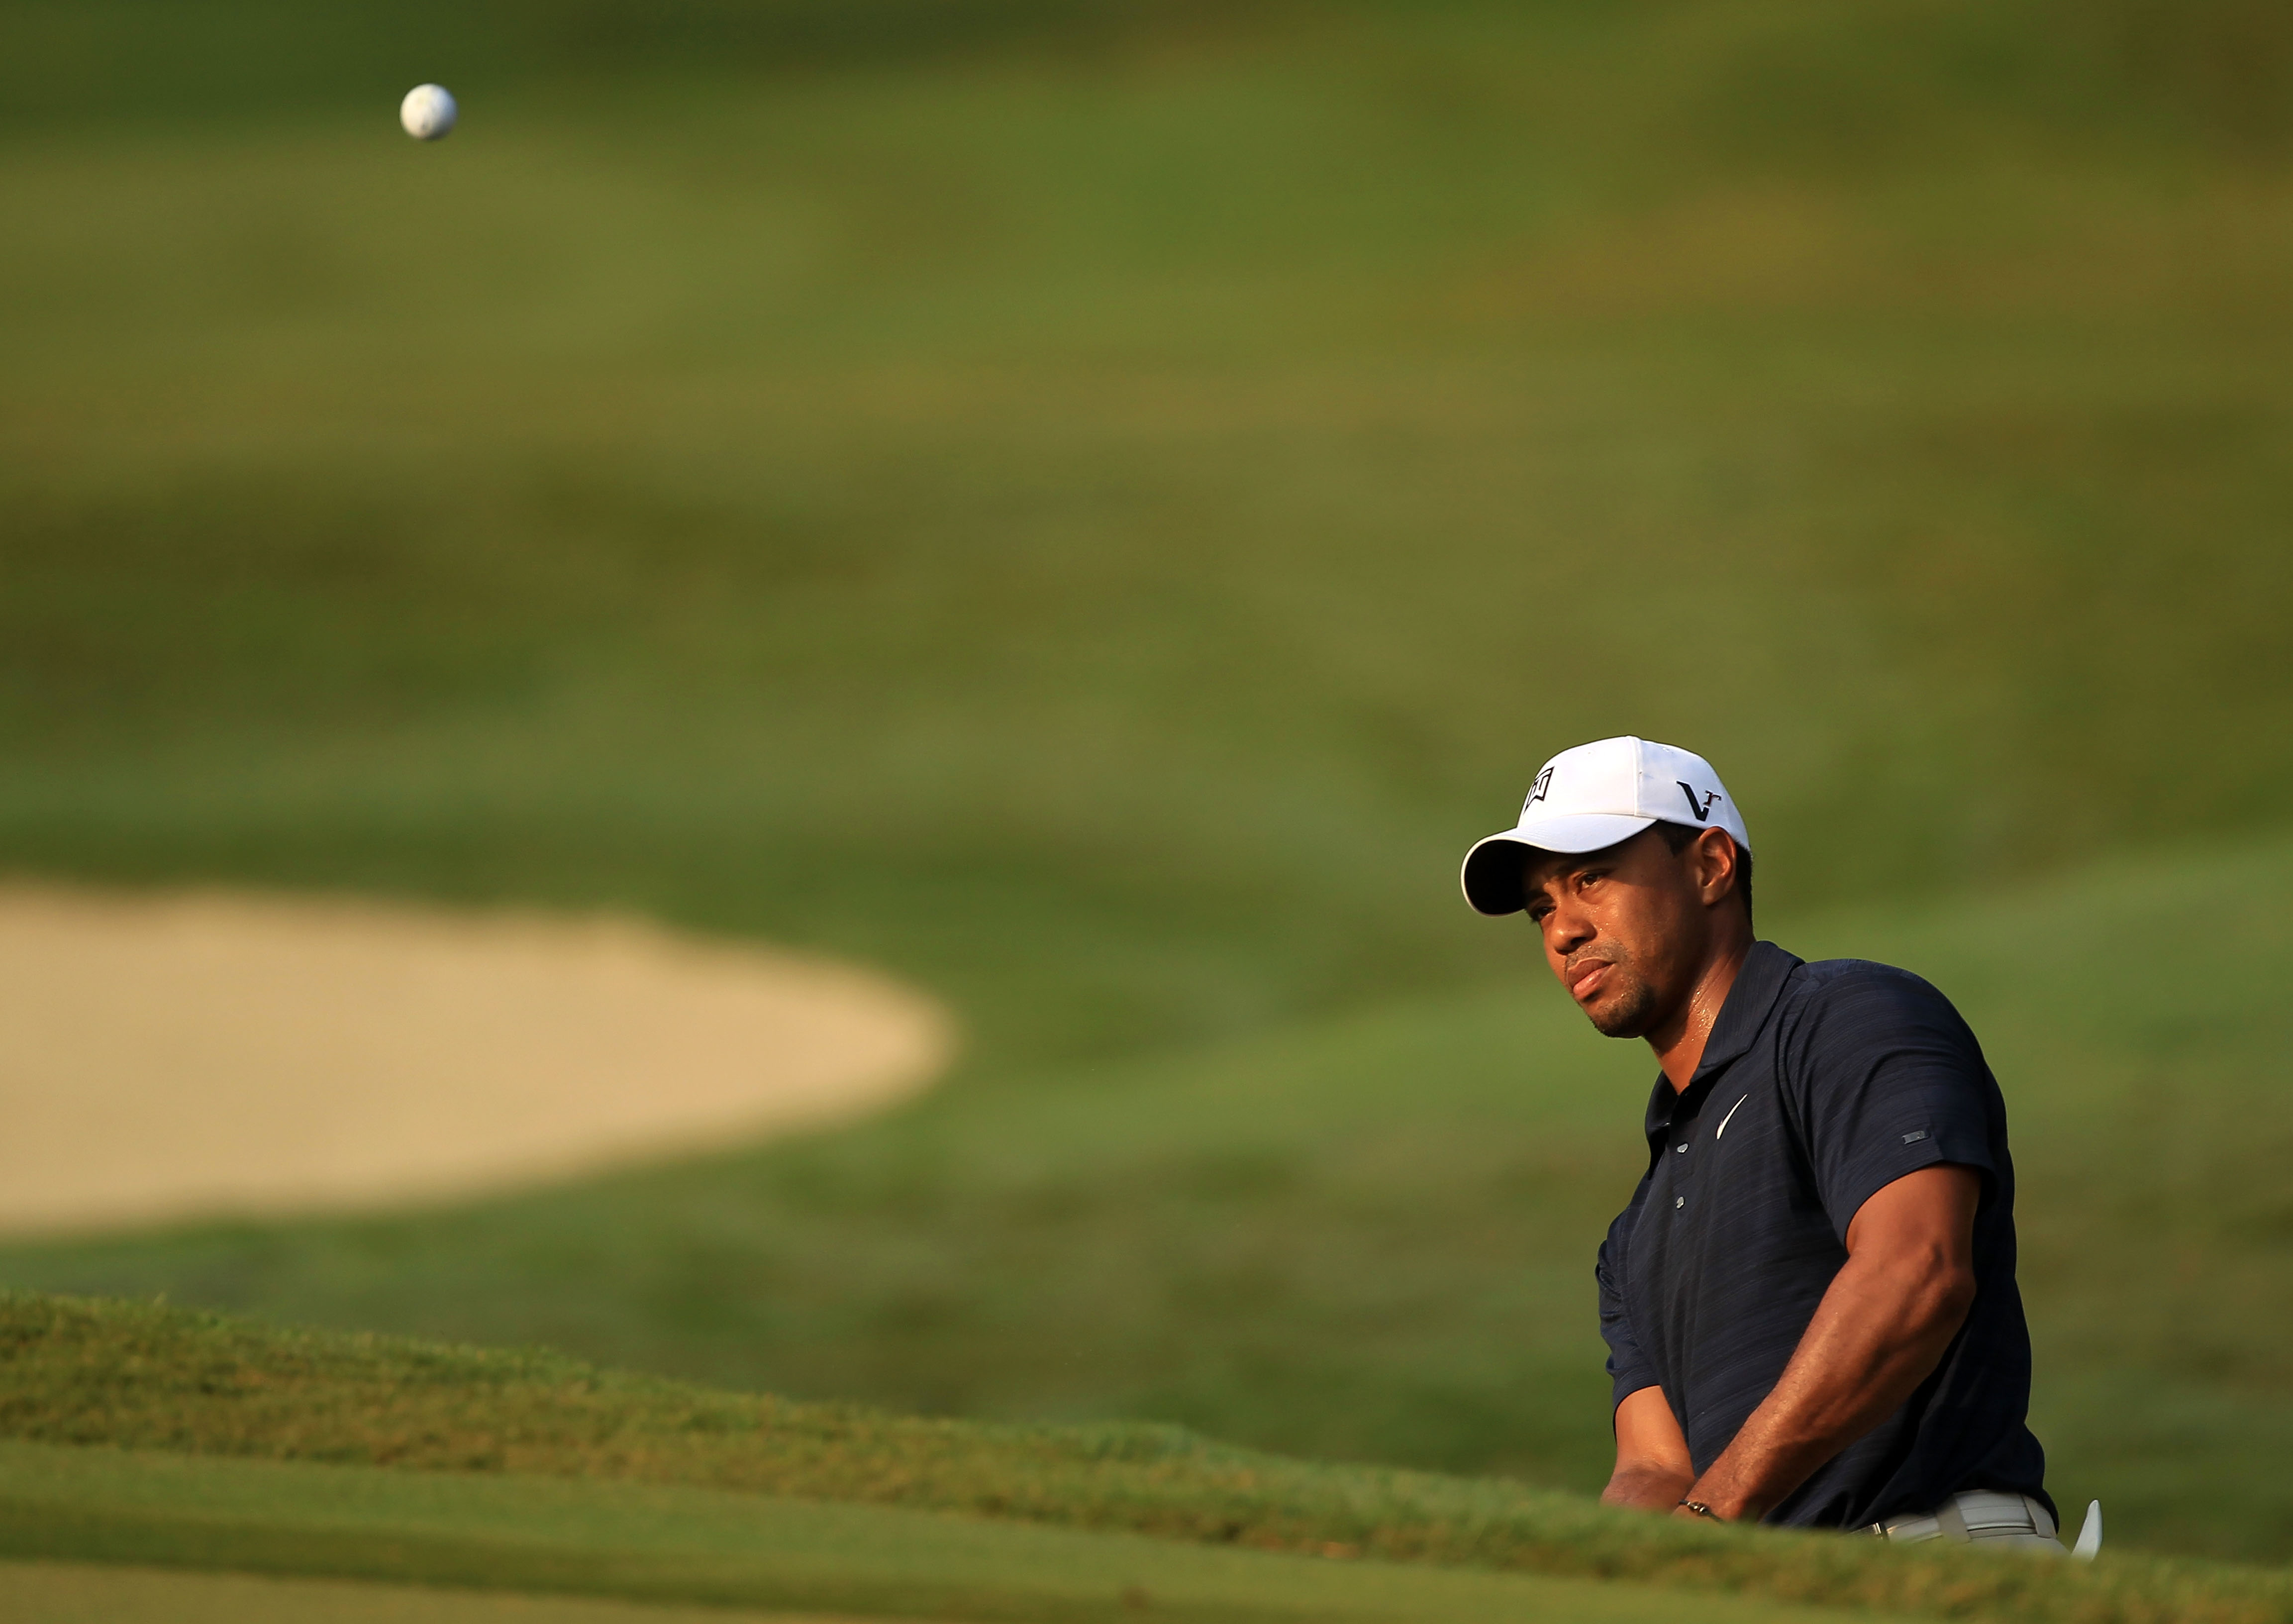 PONTE VEDRA BEACH, FL - MAY 12:  Tiger Woods hits a chip shot on the first hole during the first round of THE PLAYERS Championship held at THE PLAYERS Stadium course at TPC Sawgrass on May 12, 2011 in Ponte Vedra Beach, Florida.  (Photo by Streeter Lecka/